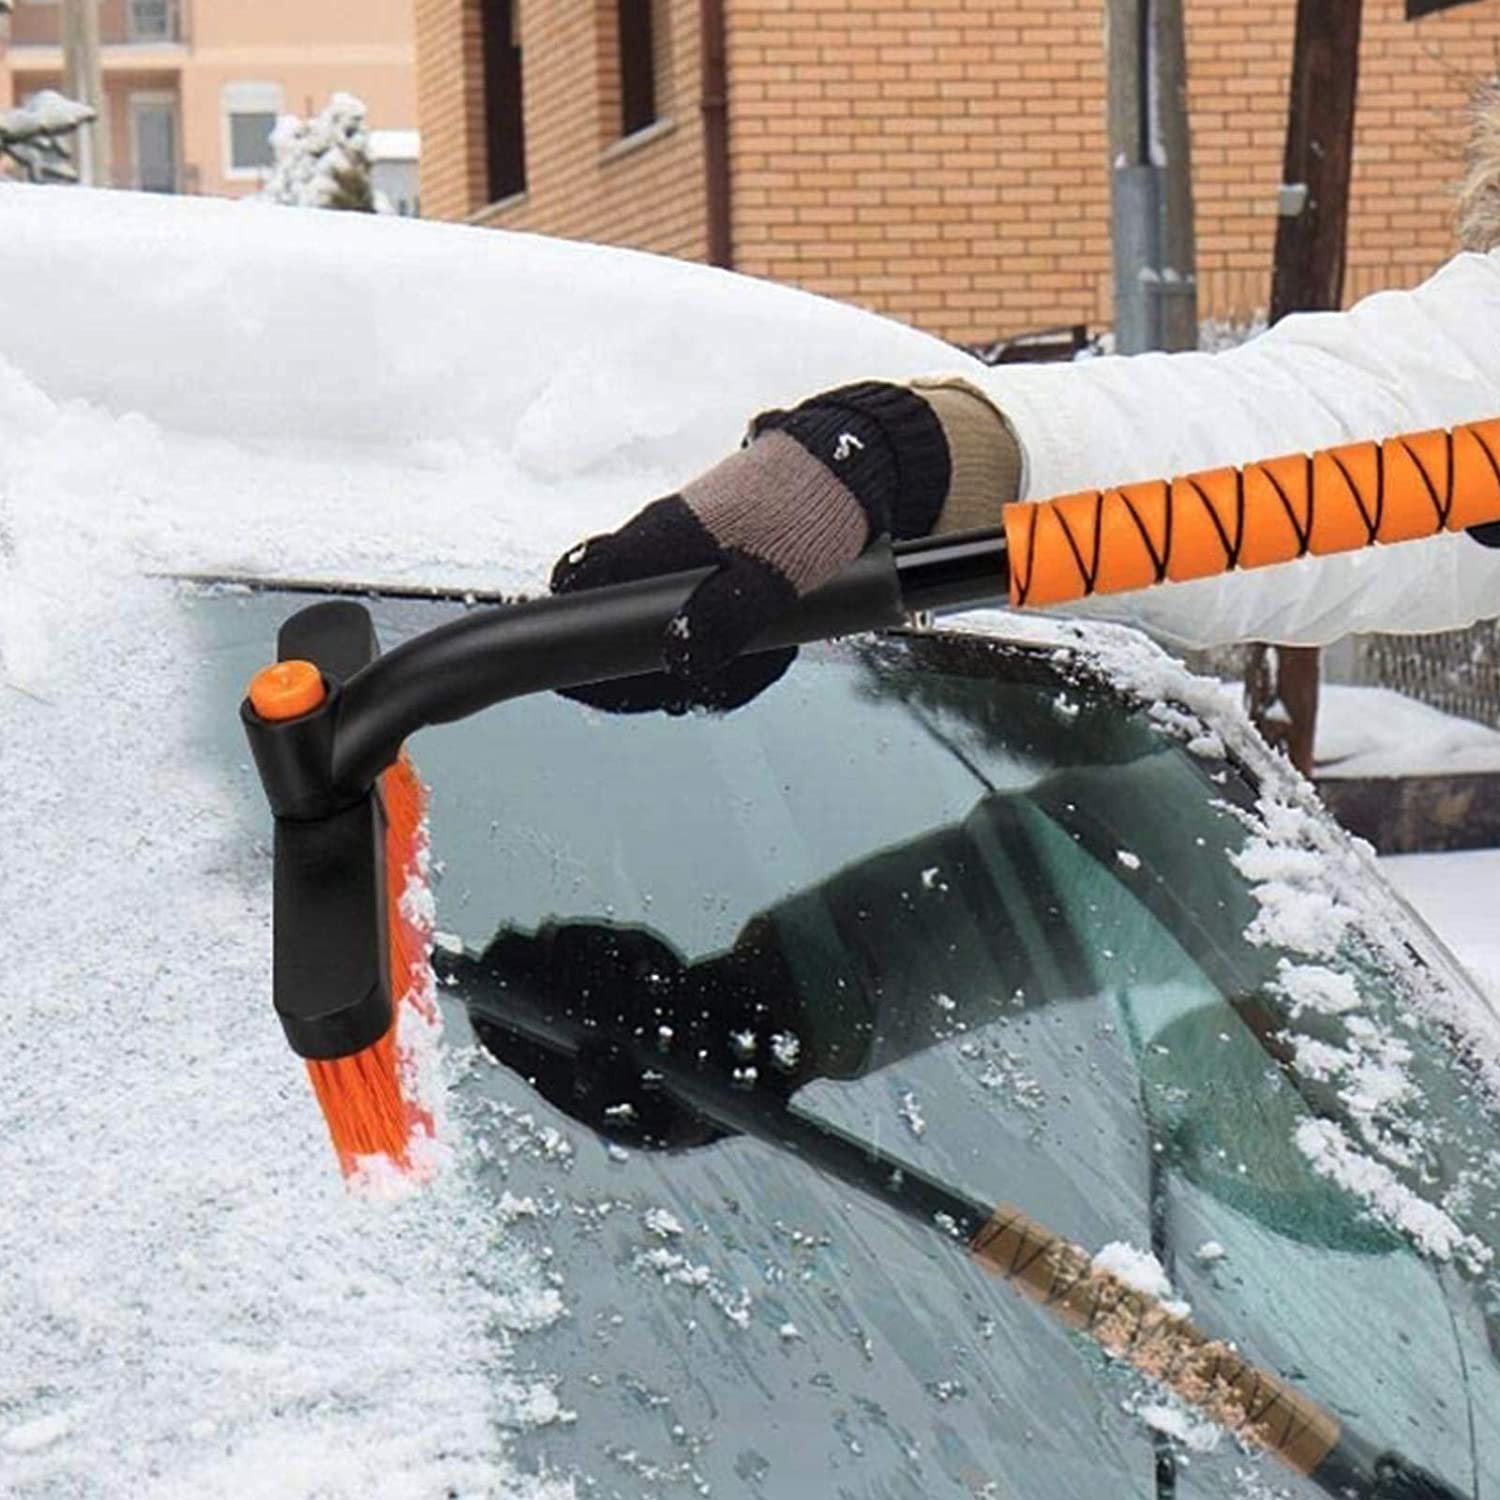 Blue SUHU Car Snow Brush Removal with Ice Scraper and Foam Grip Detachable Snow Mover Extendable Snow Brush for Car Auto SUV Truck Windshield Windows